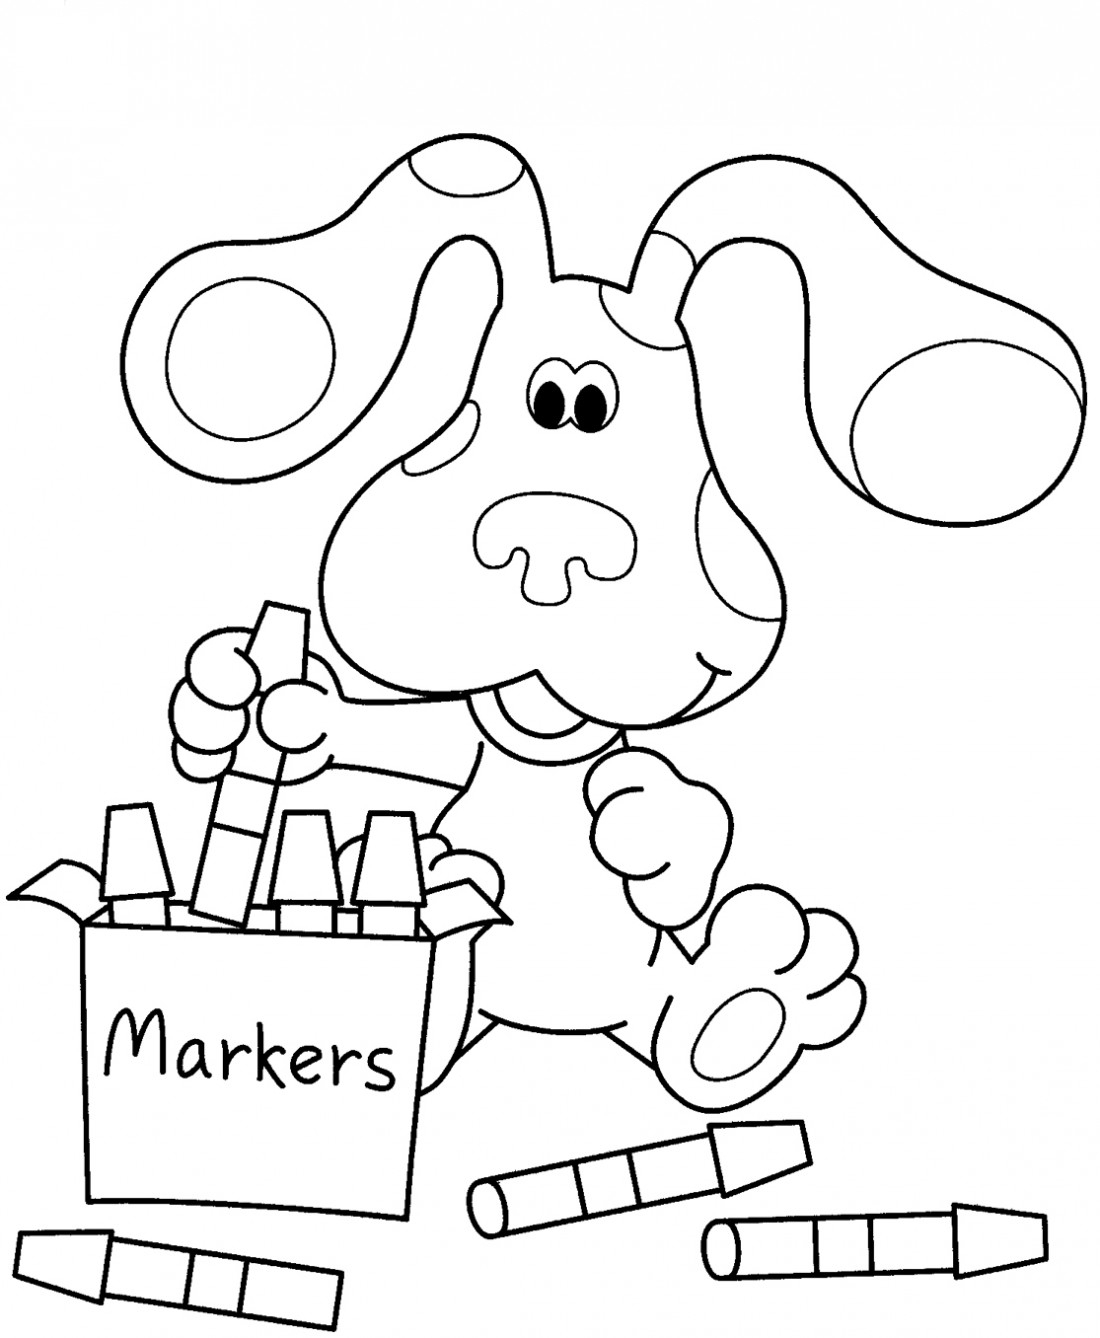 - Crayola Free Coloring Pages Crayola Free Coloring Pages Free